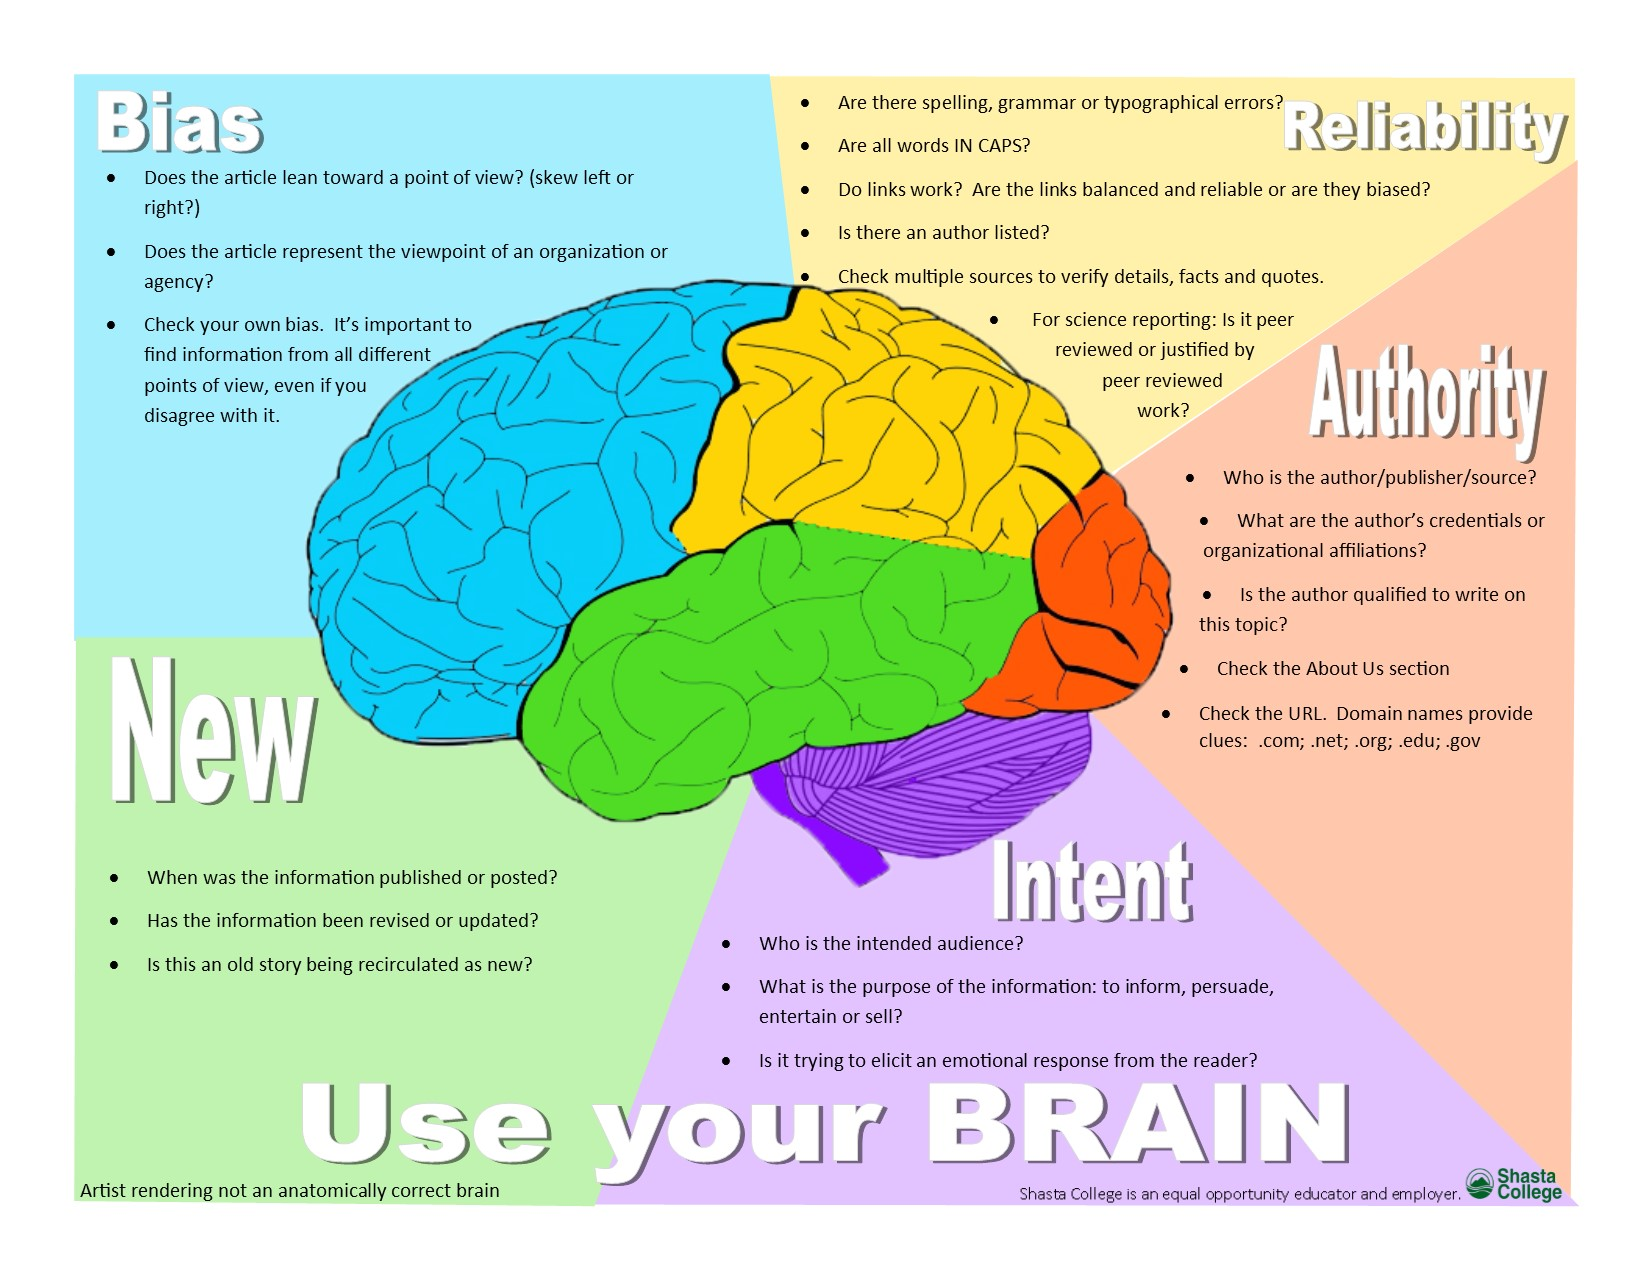 Home Brain Using Your Brain To Evaluate Information Libguides